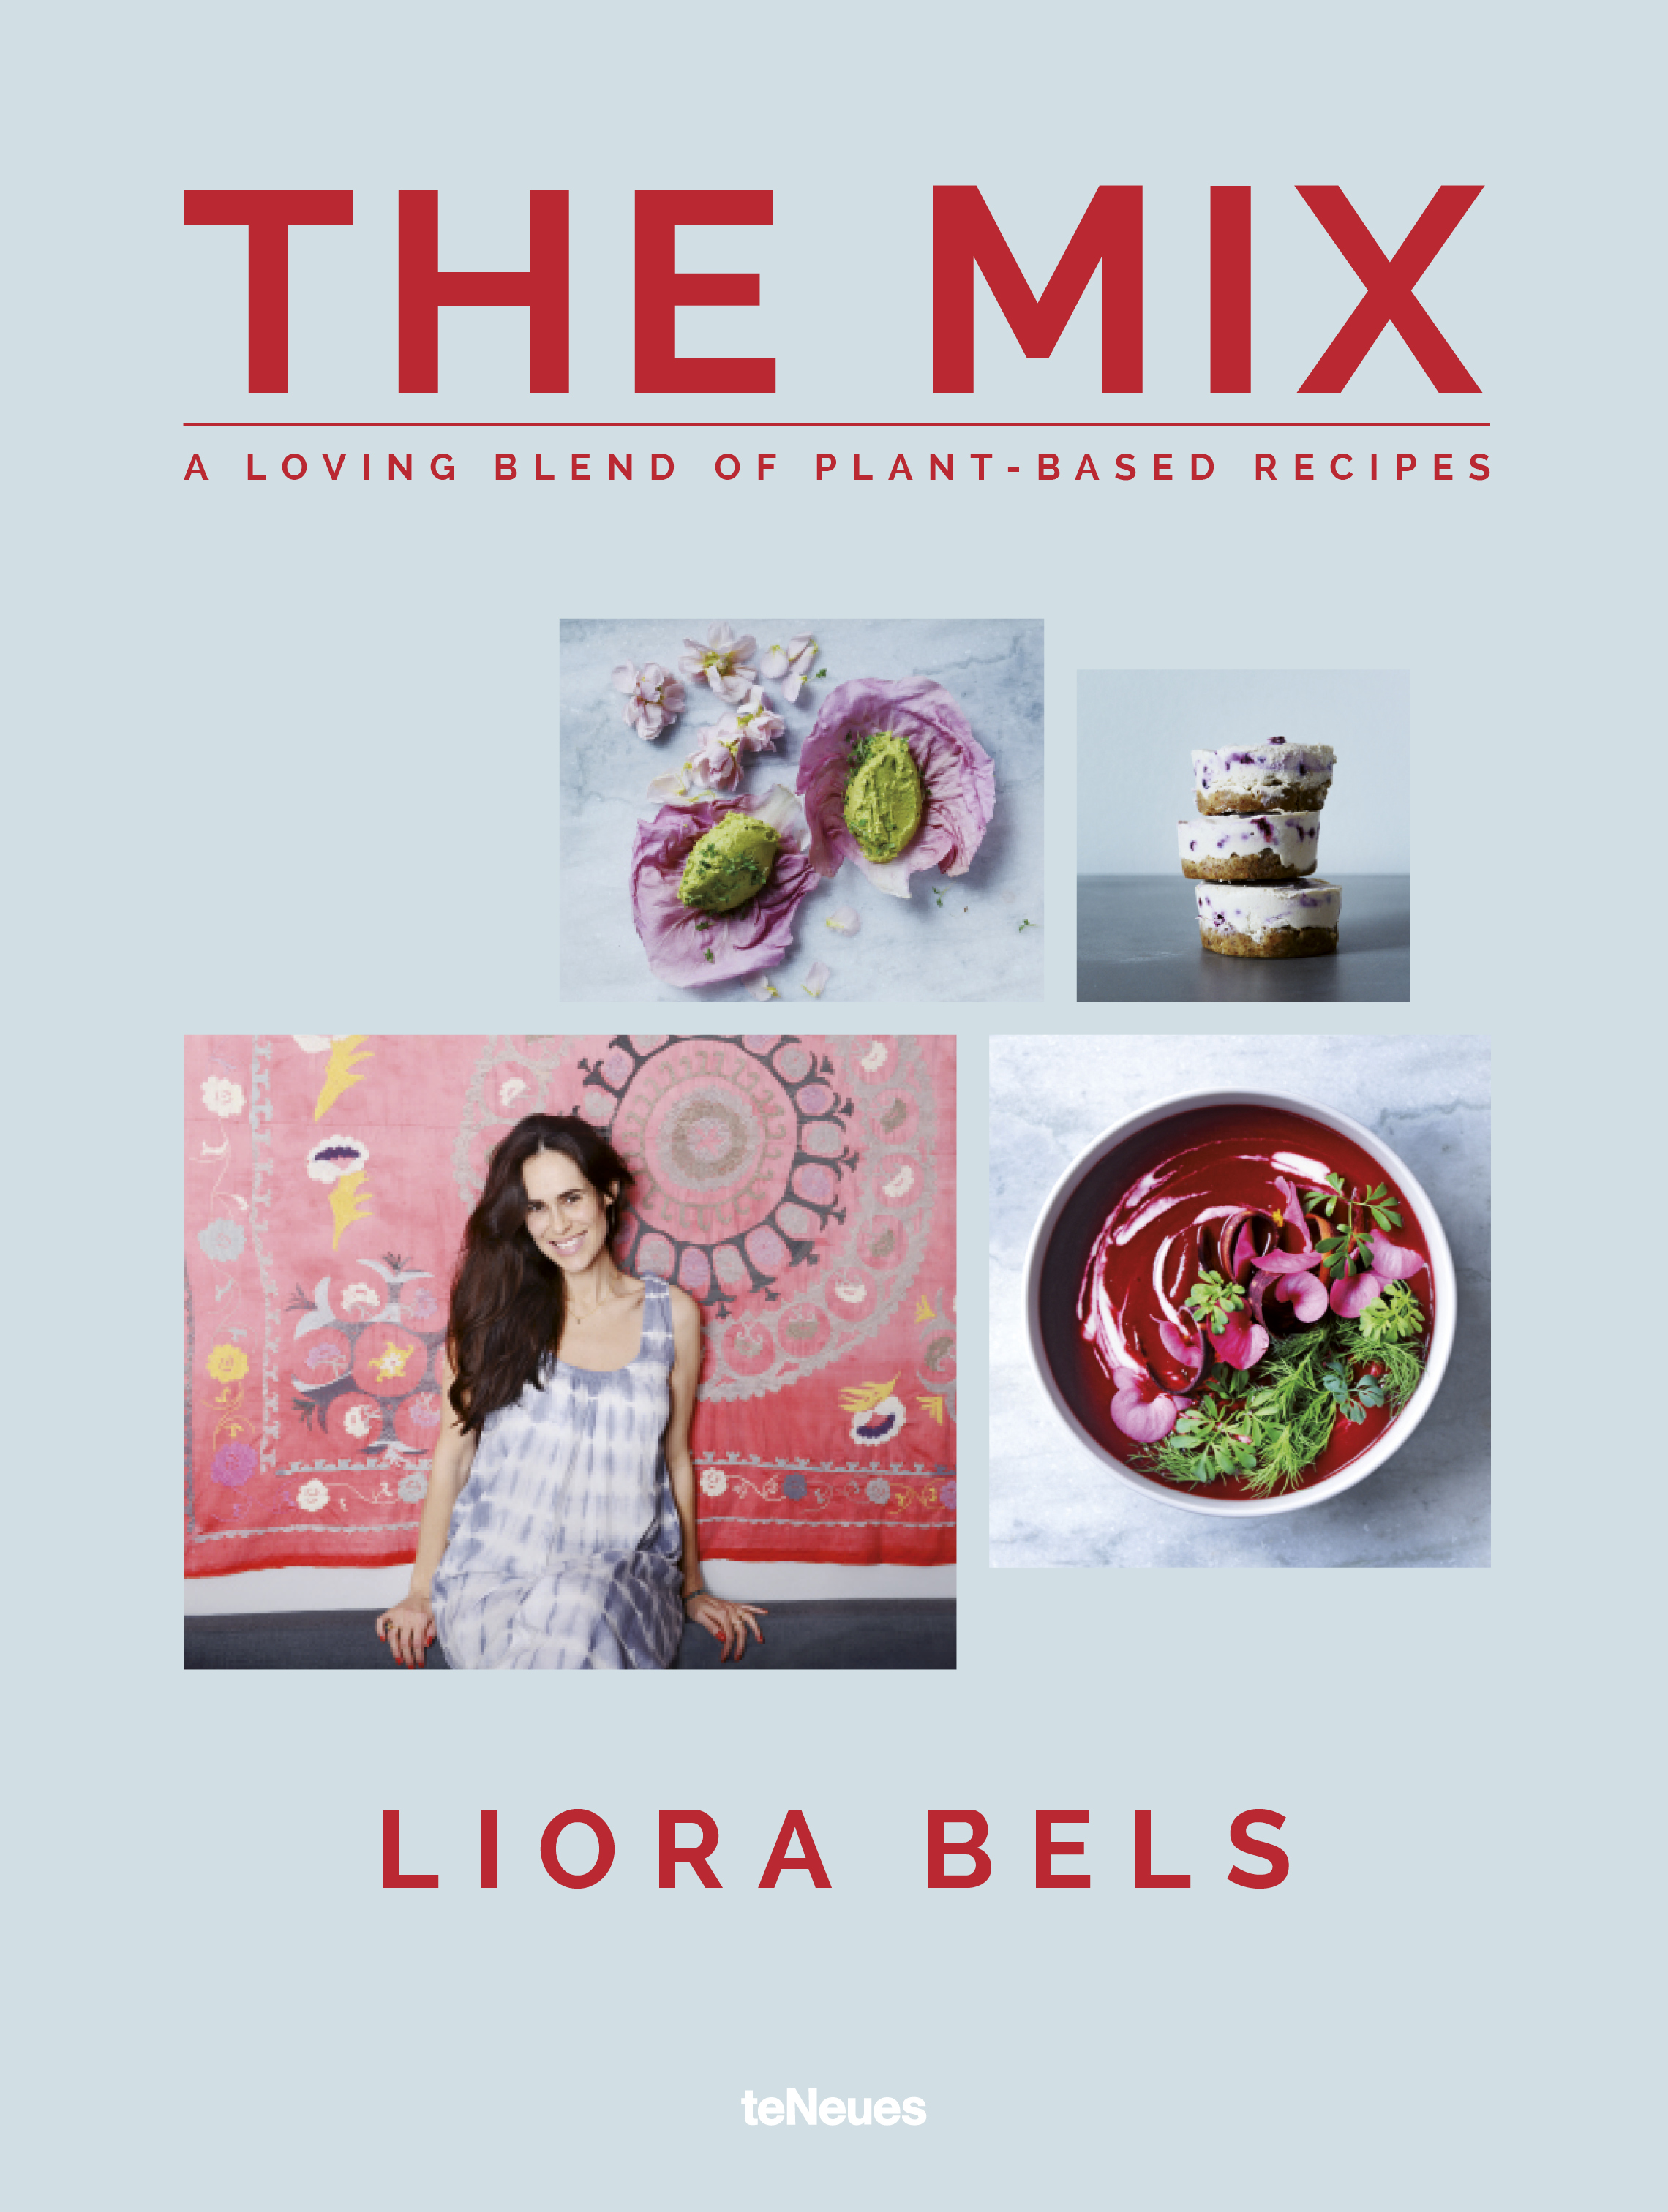 The Mix by Liora Bels